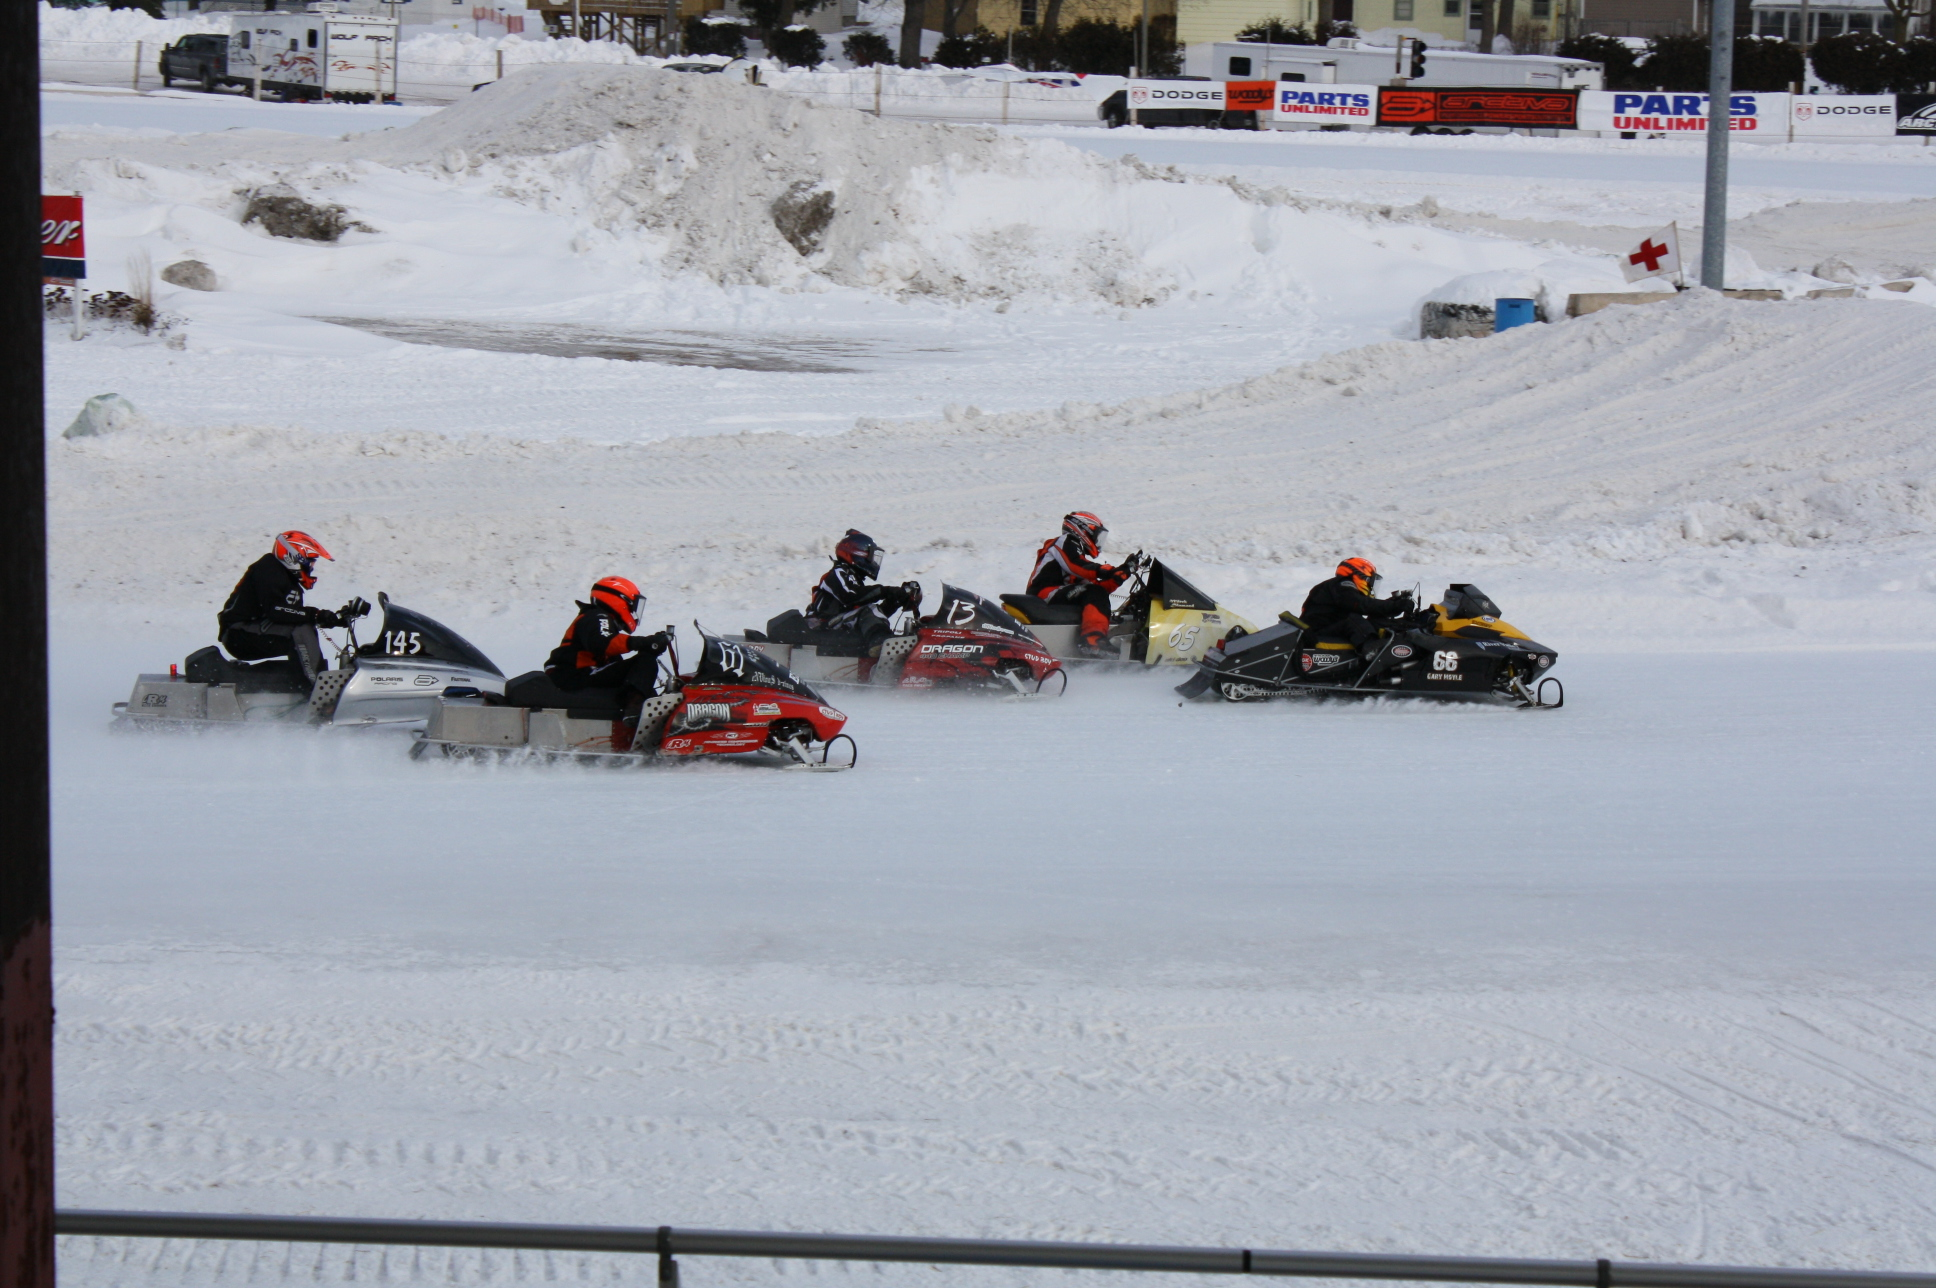 Eagle River snow mobiling